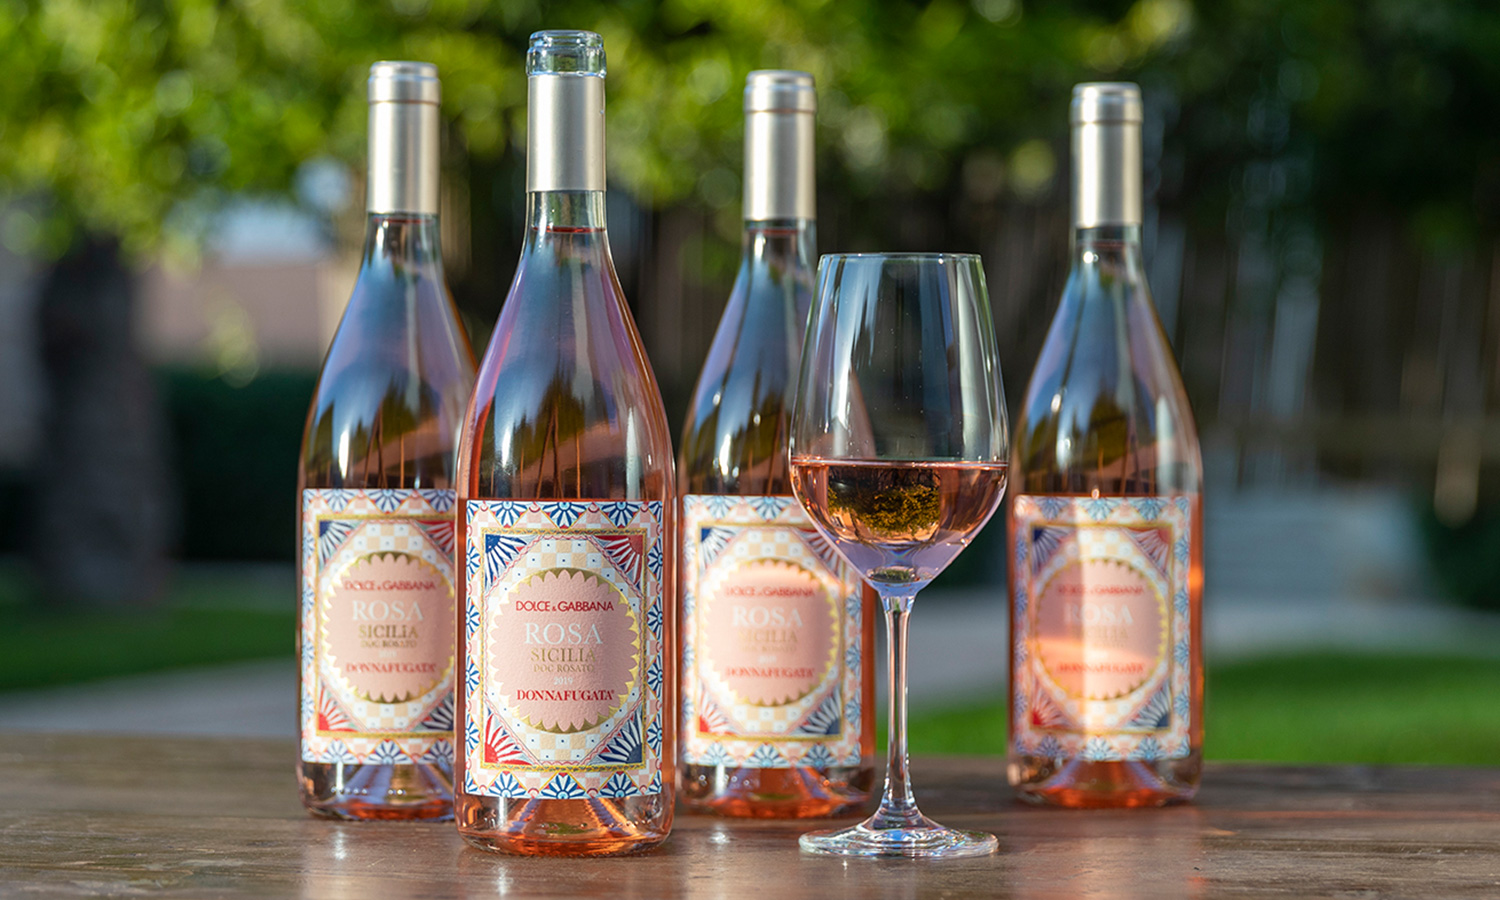 Dolce and Gabbana Release Rosé Wine With Donnafugata